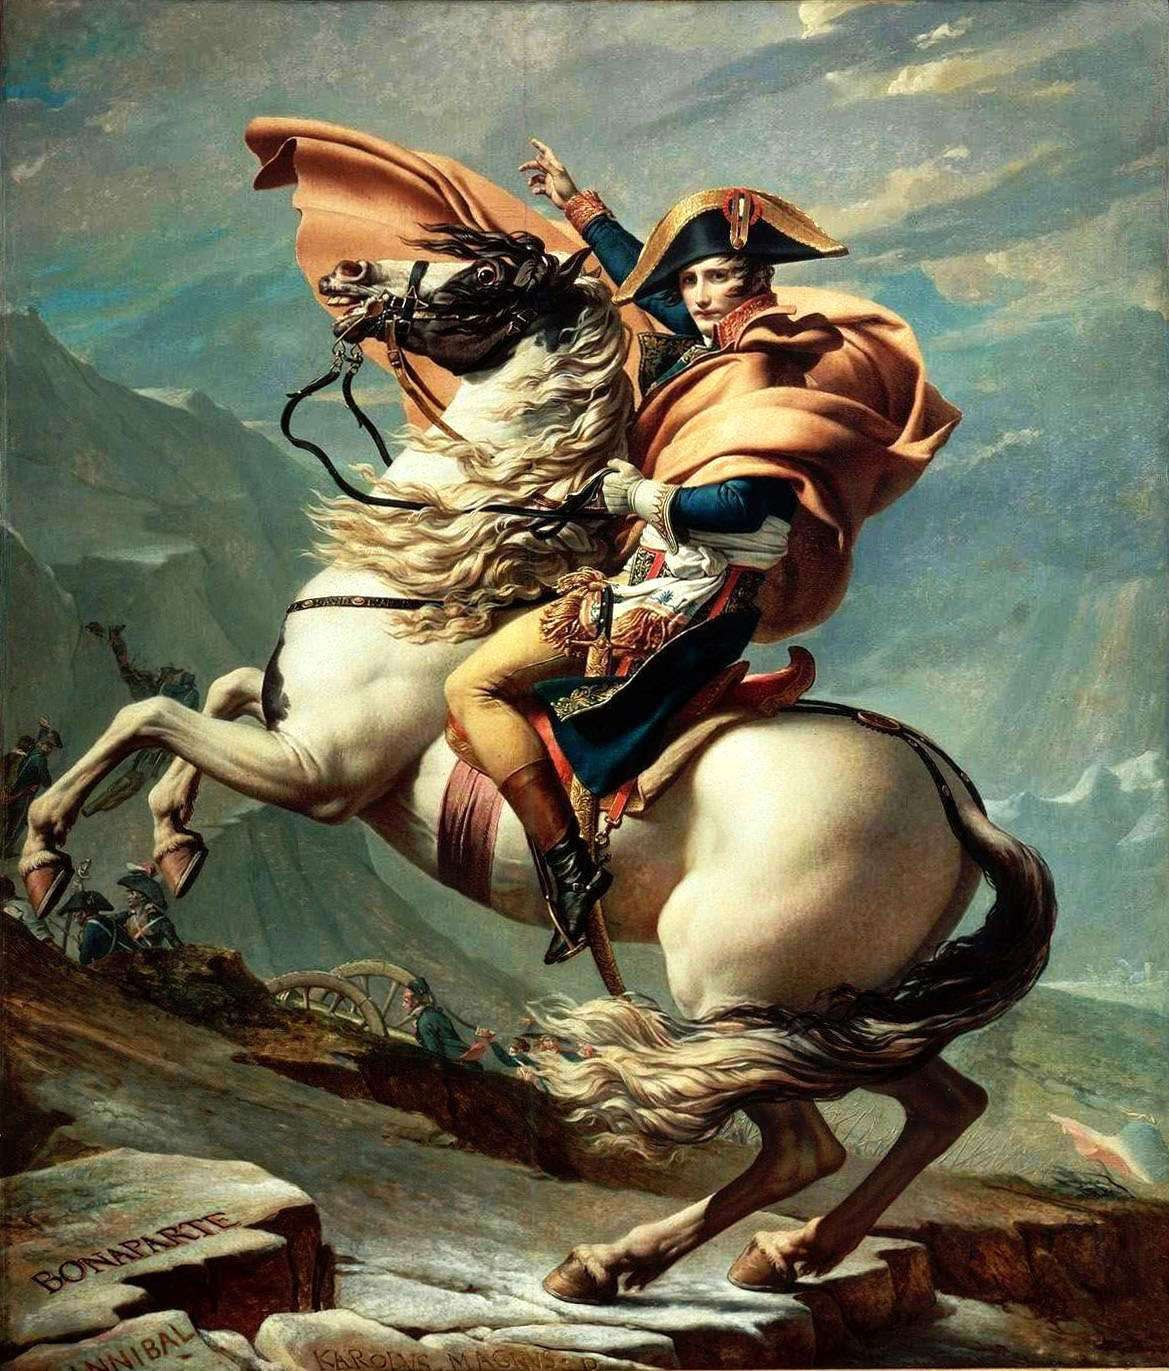 David's Napoleon is noble — but not accurate.